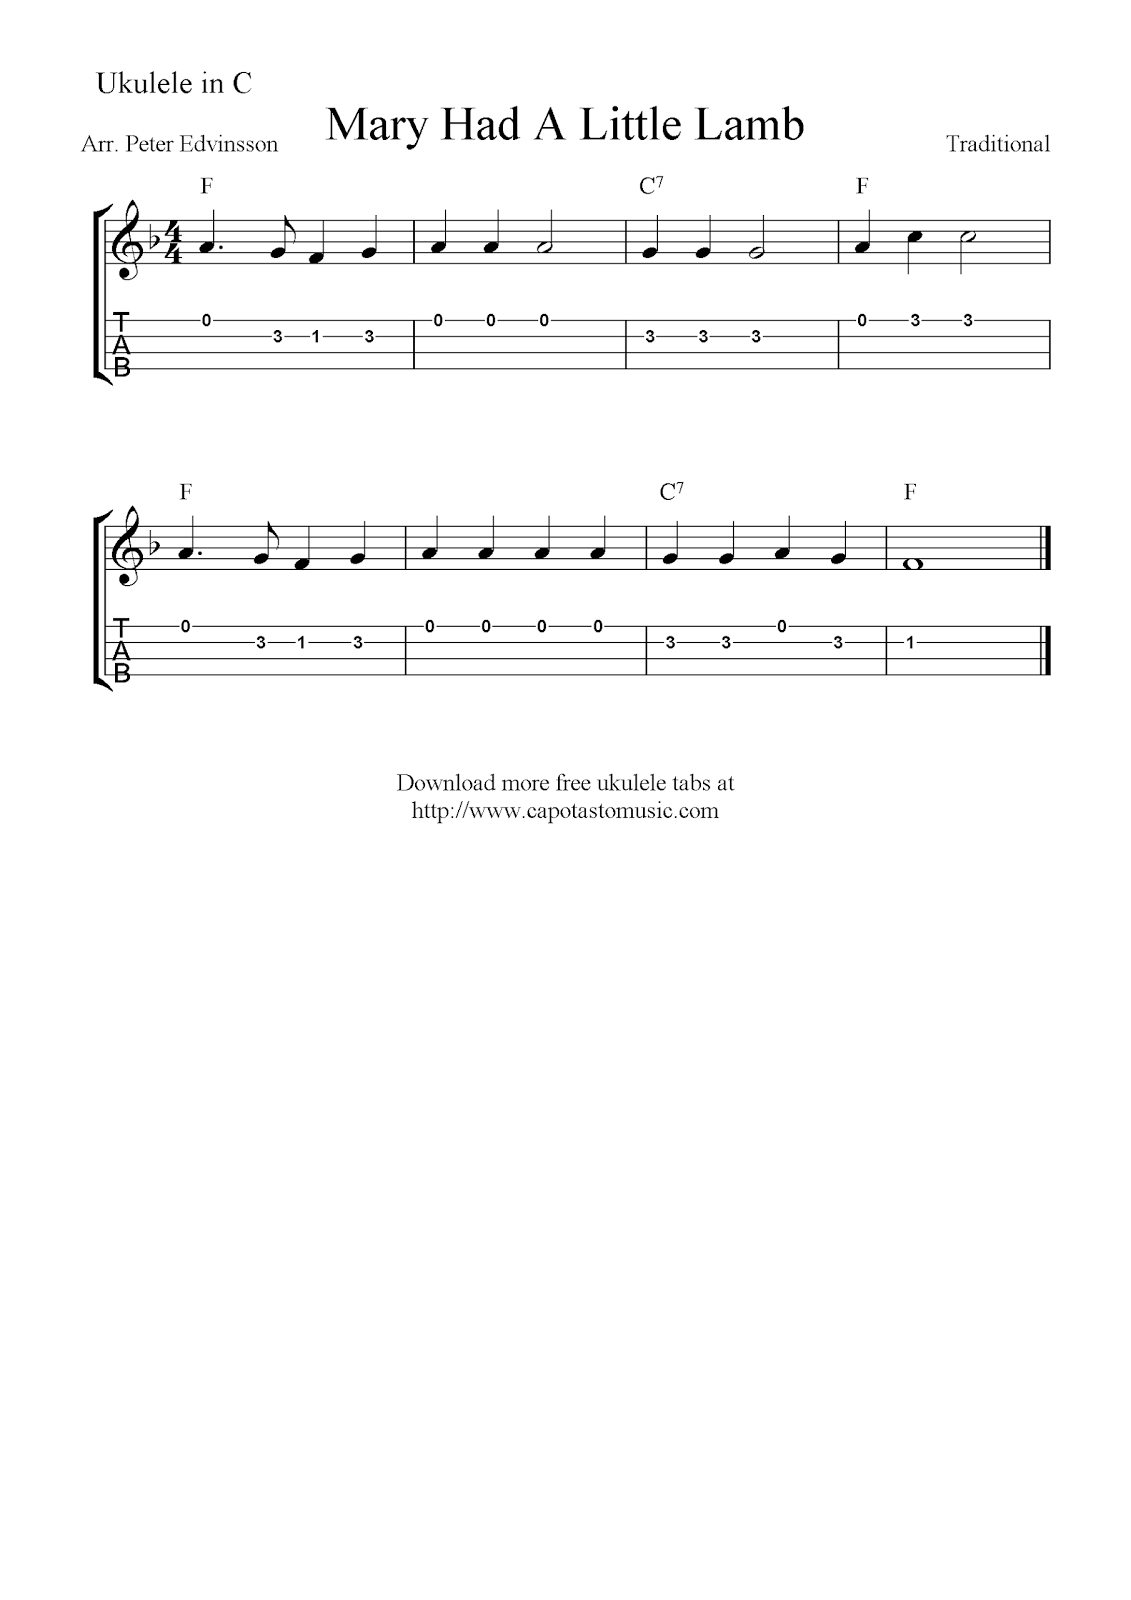 Happy birthday to you free ukulele tab sheet music ukulele free sheet music scores mary had a little lamb free ukulele tablature sheet music hexwebz Choice Image